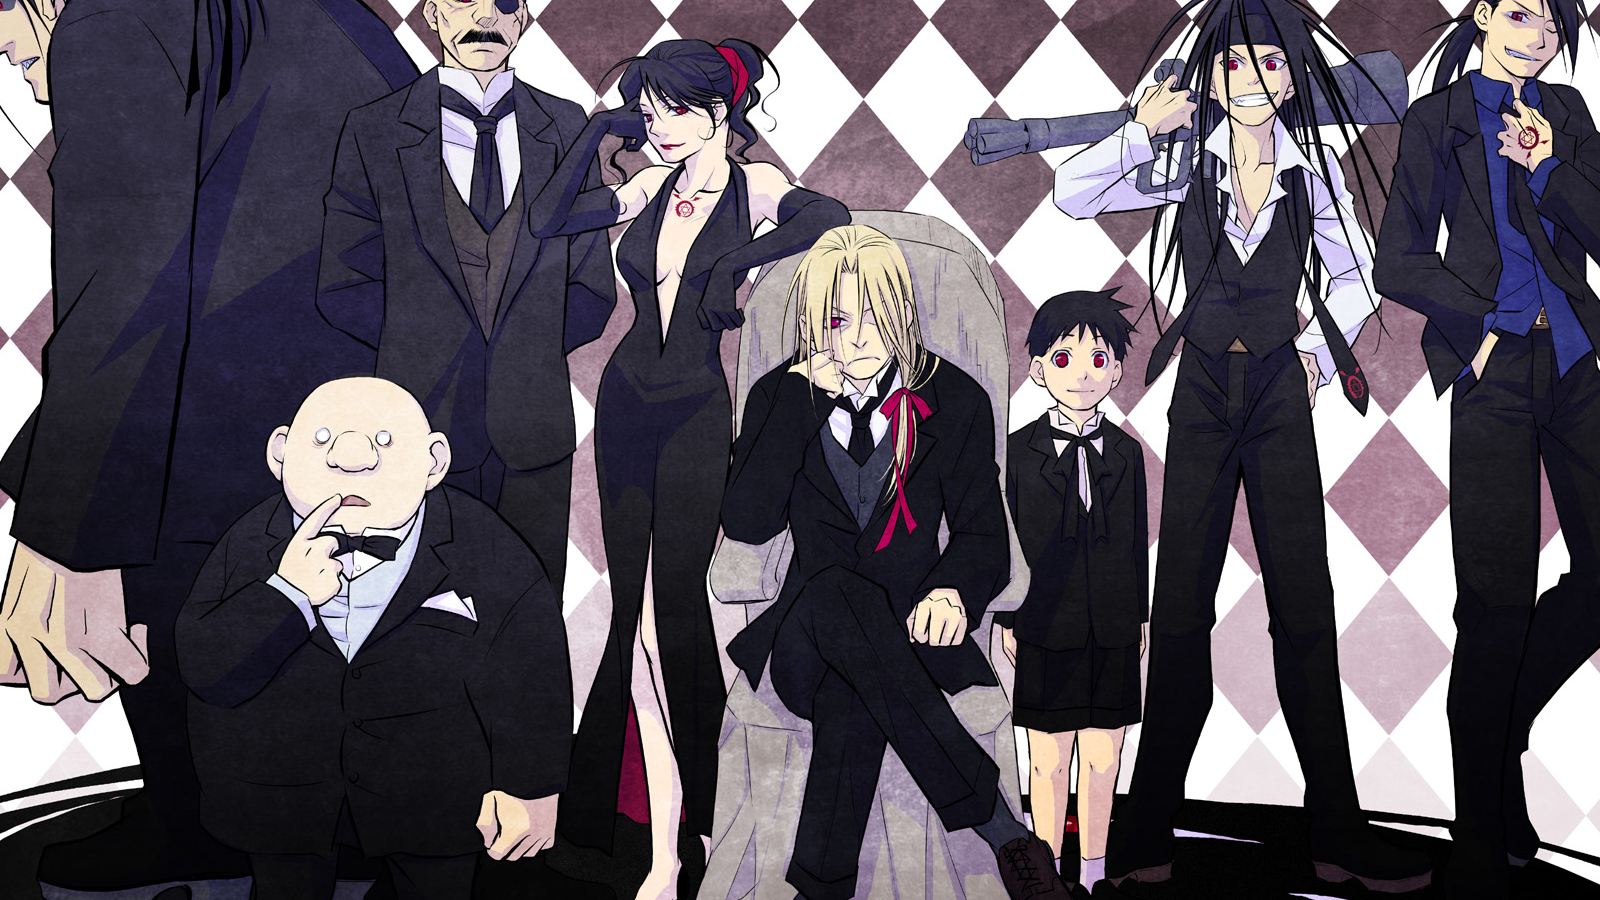 fullmetal alchemist suit homunculus HD Wallpaper